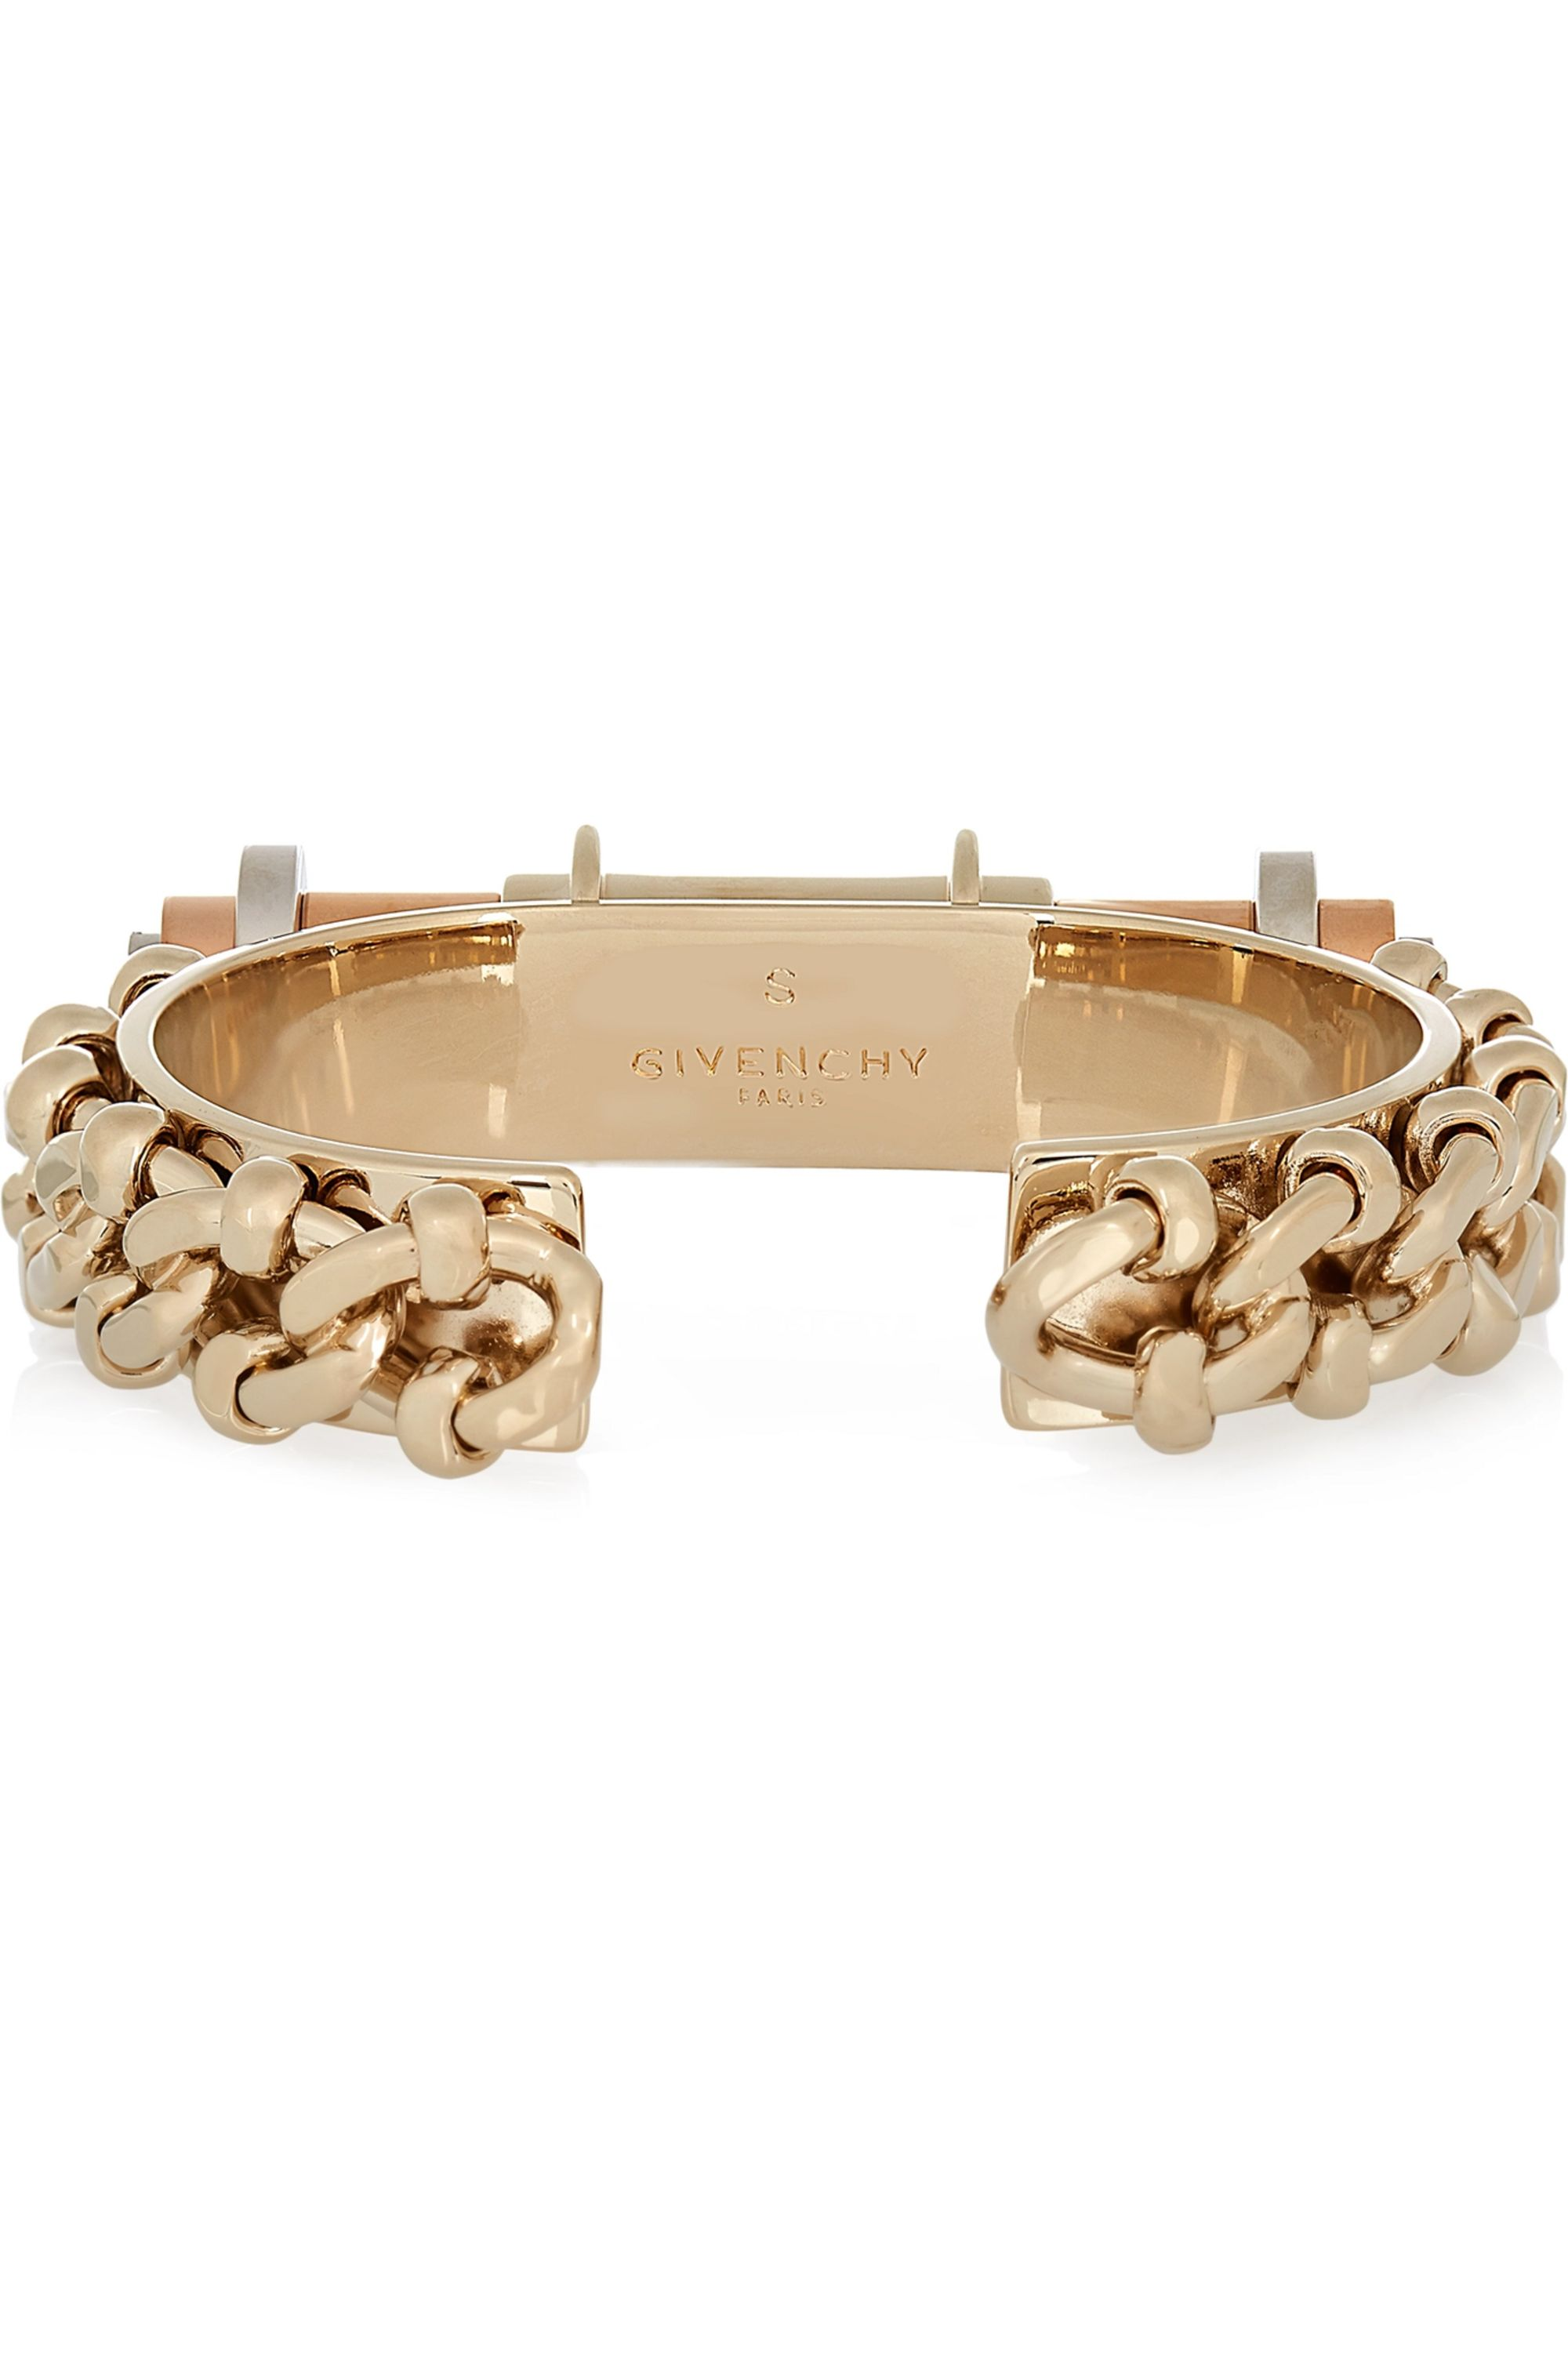 Givenchy Obsedia cuff in gold, rose-gold and silver-tone